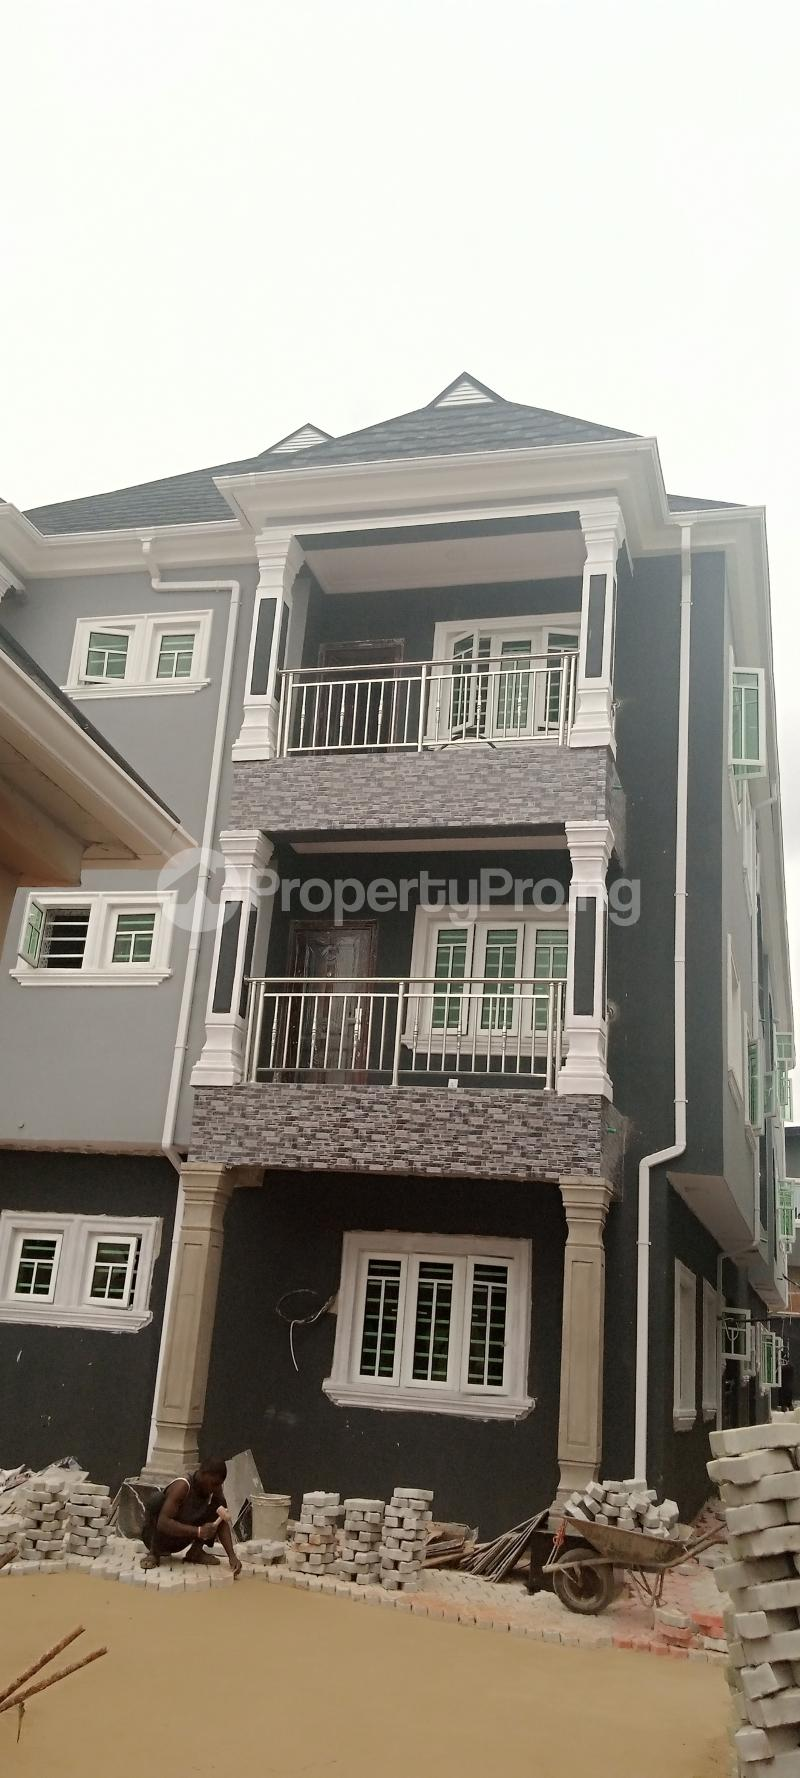 3 bedroom Flat / Apartment for rent A close Oke-Ira Ogba Lagos - 11